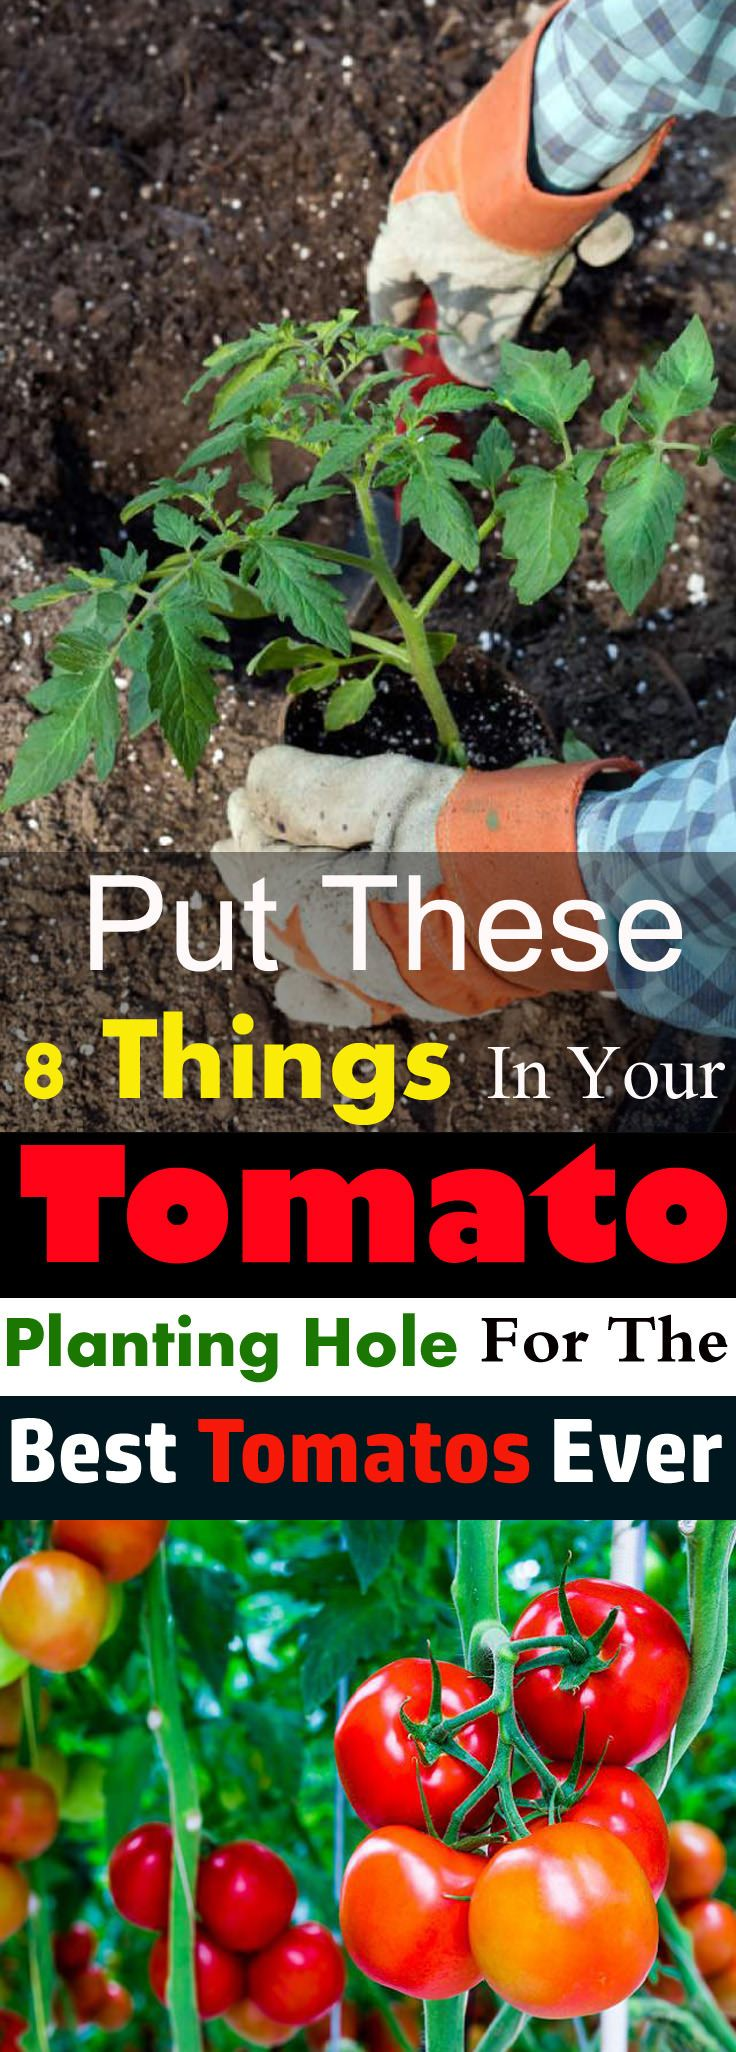 Put These 8 Things in Your TOMATO Planting Hole For The Best Tomatoes Ever